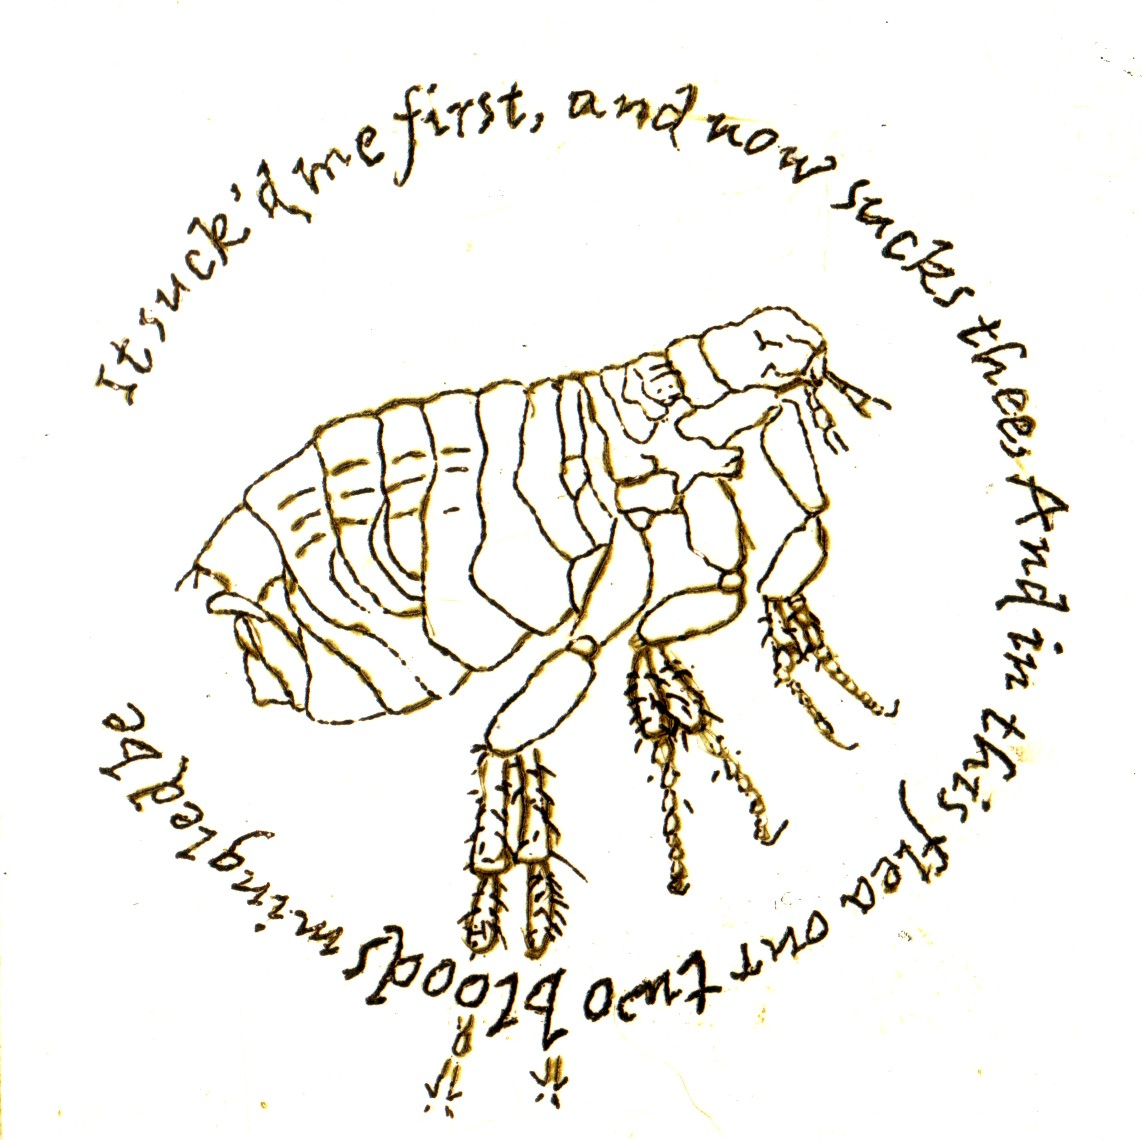 the arrogance in the flea by john donne Donne - meter in `the flea` 6/11/2015 0 comments this flea is you and i, and this our mar-riage bed john donne poetry metaphysical poetry tess of the d'ubervilles thomas hardy english a2 blog archives july 2015 june 2015 create a free website.